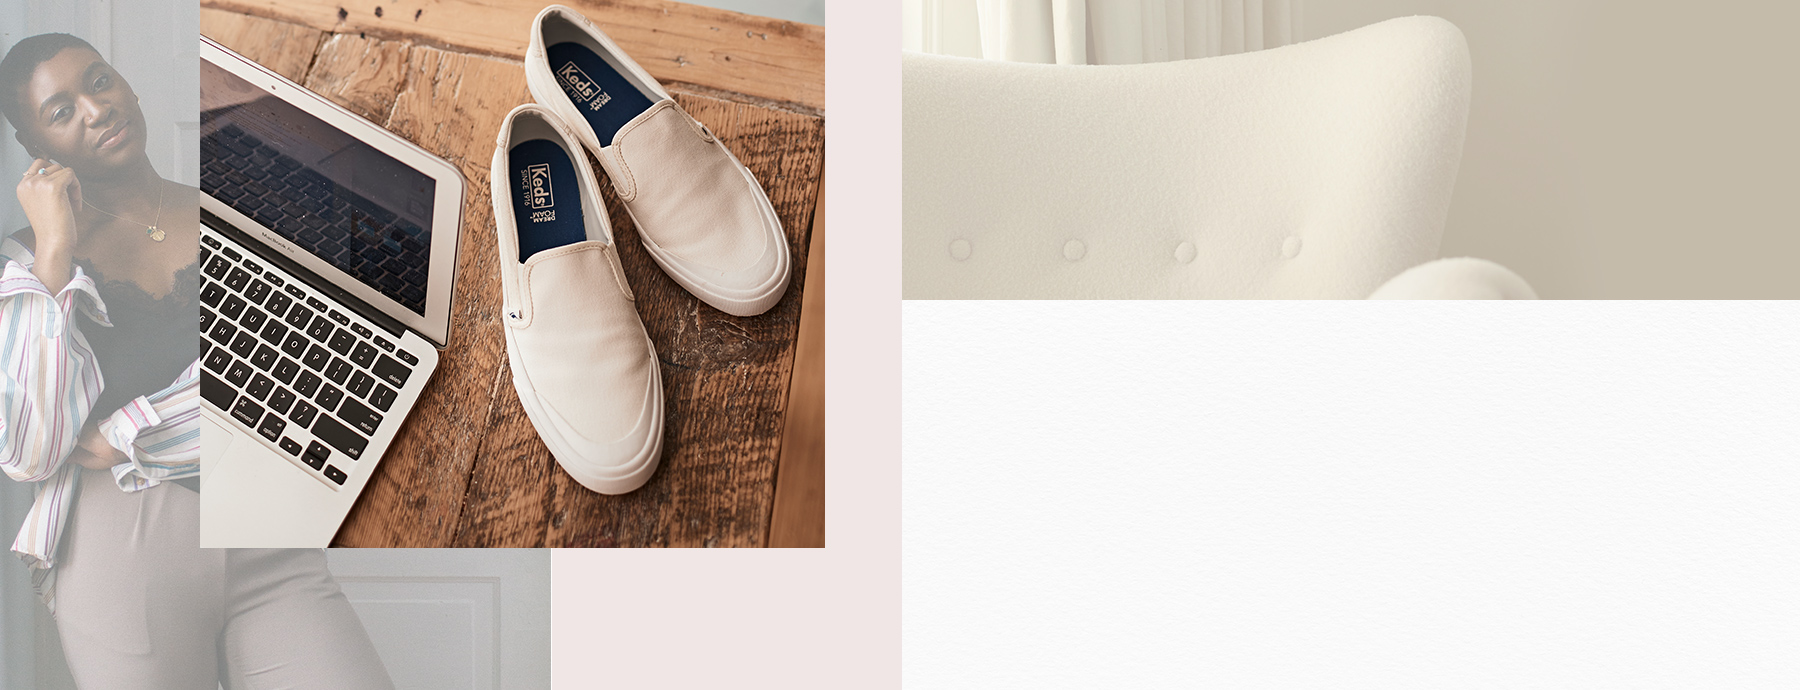 Working at home in comfort and style with Keds.